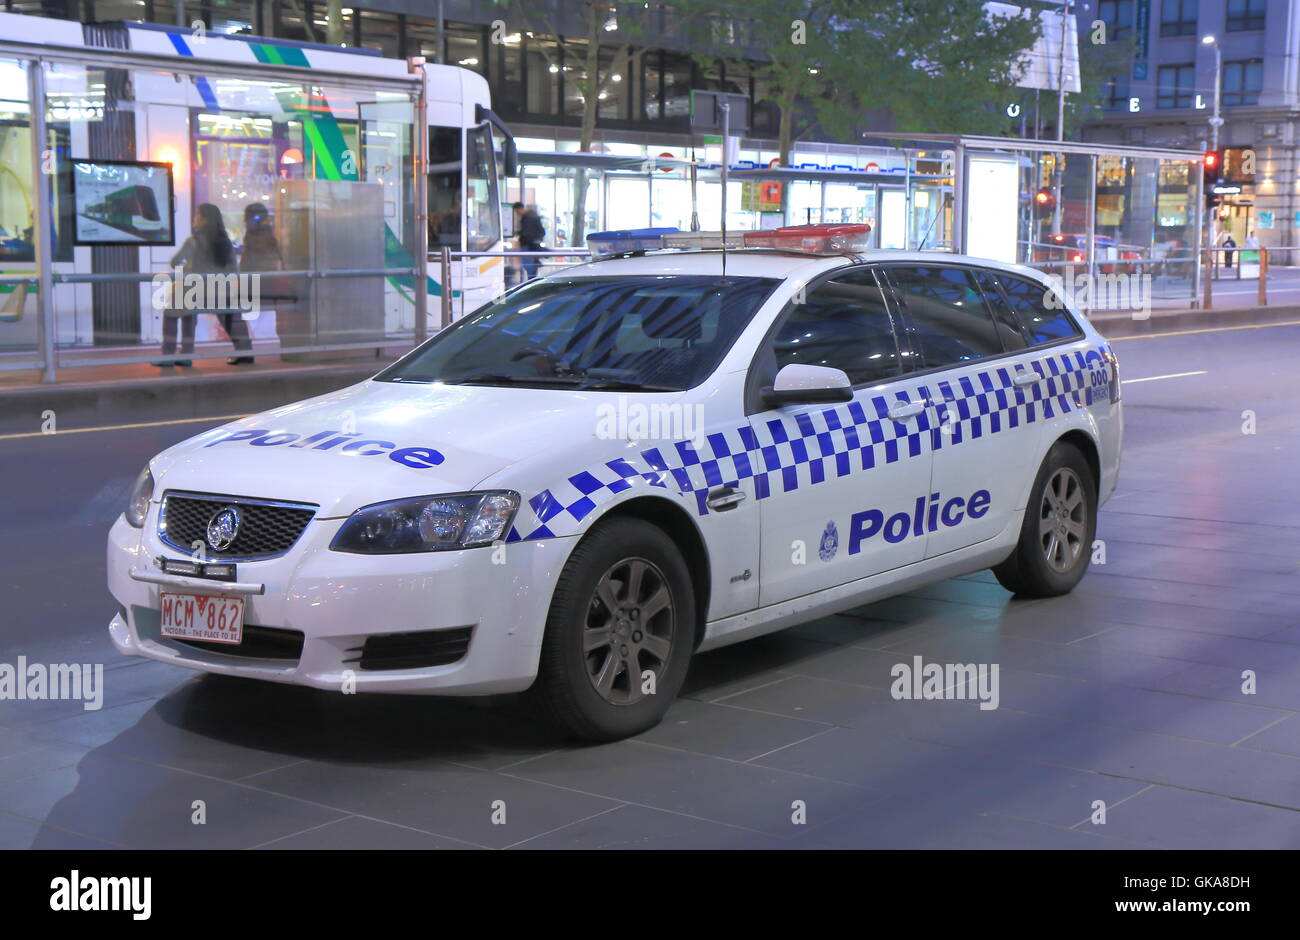 Police Car parked at Southern Cross Stationin Melbourne Australia. - Stock Image